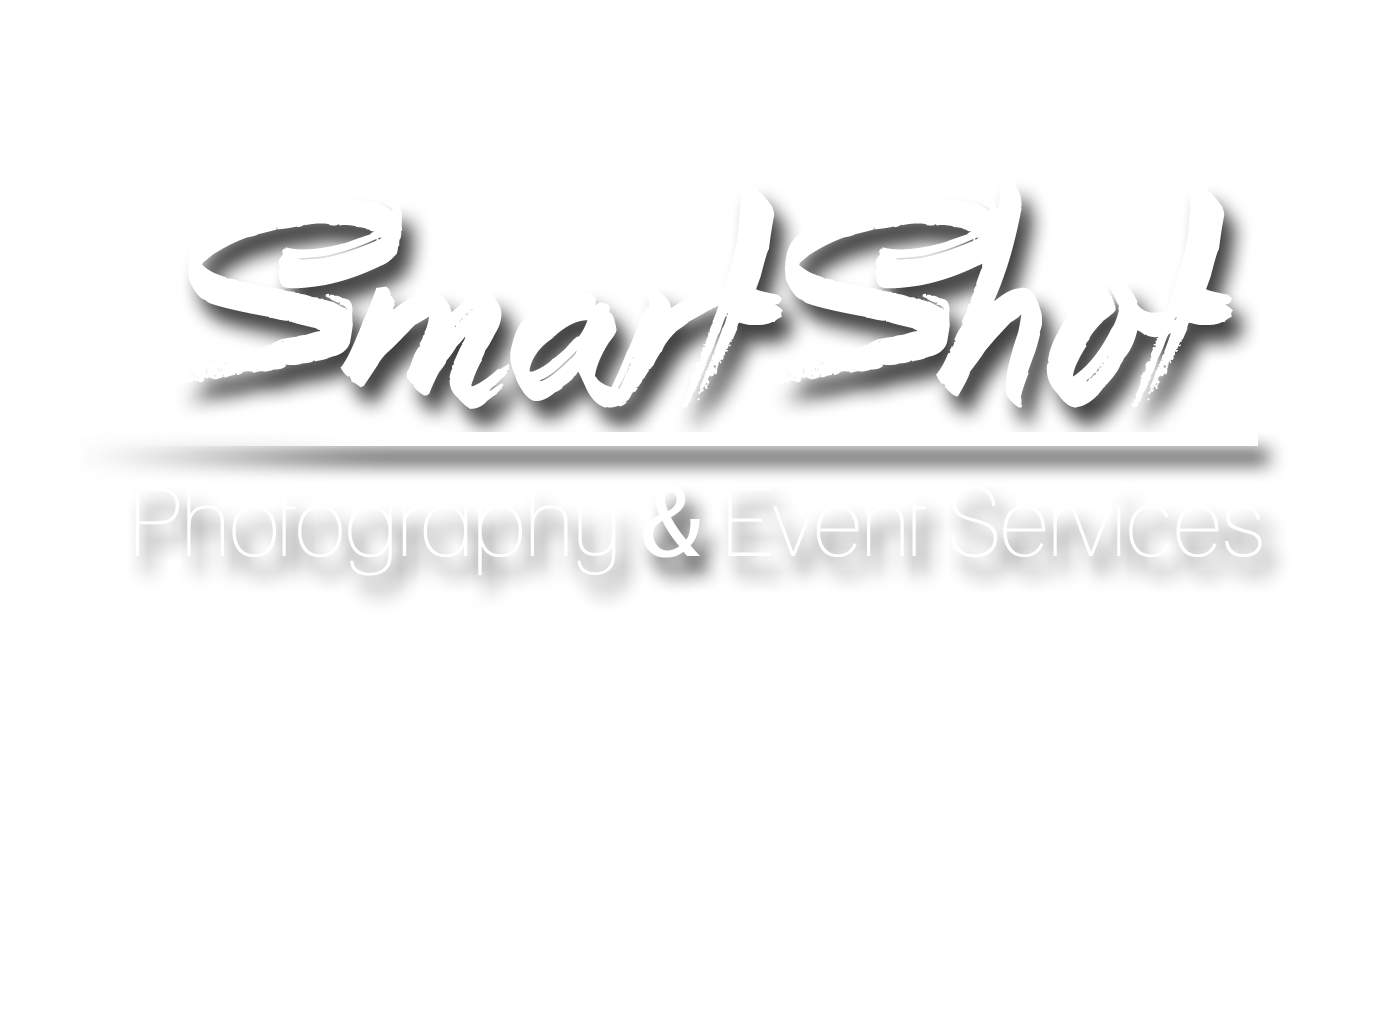 SmartShot Photography & Event Services